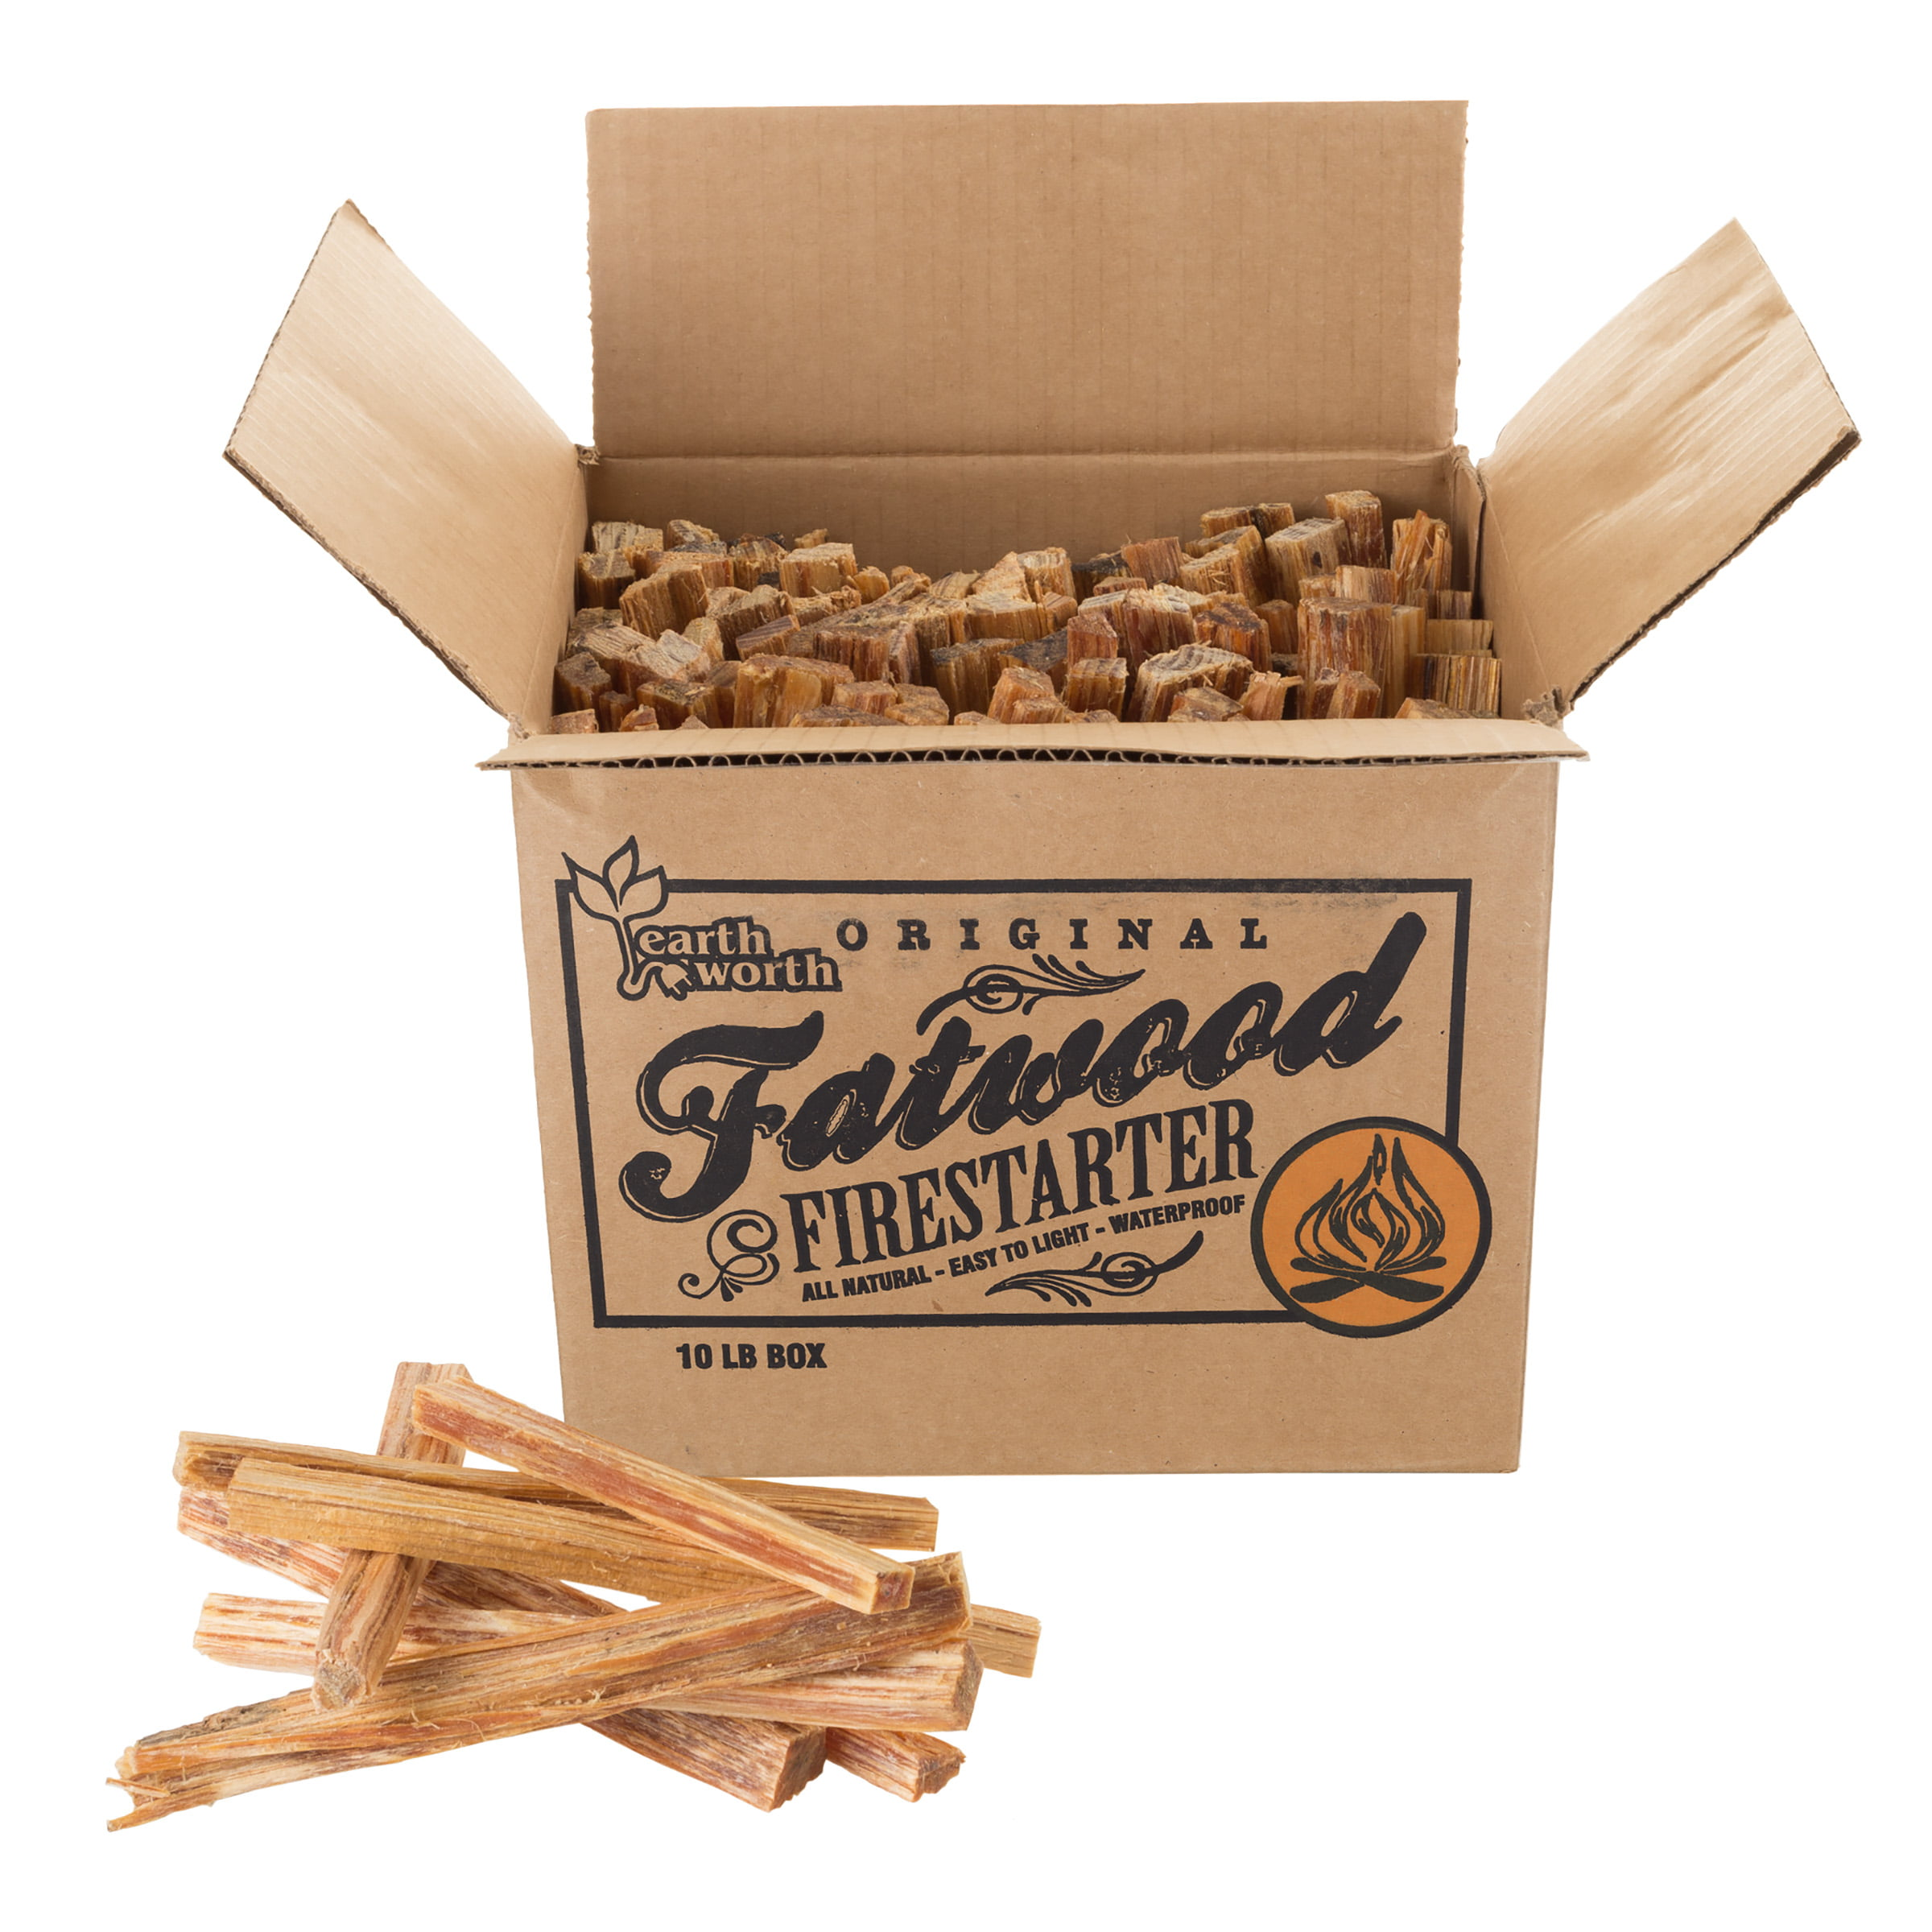 Fatwood Firestarter Kindling Sticks for Wood Stoves, Fireplaces, BonFirepits, Camping, Grill, Survival Quickstart Tinder... by Trademark Global LLC